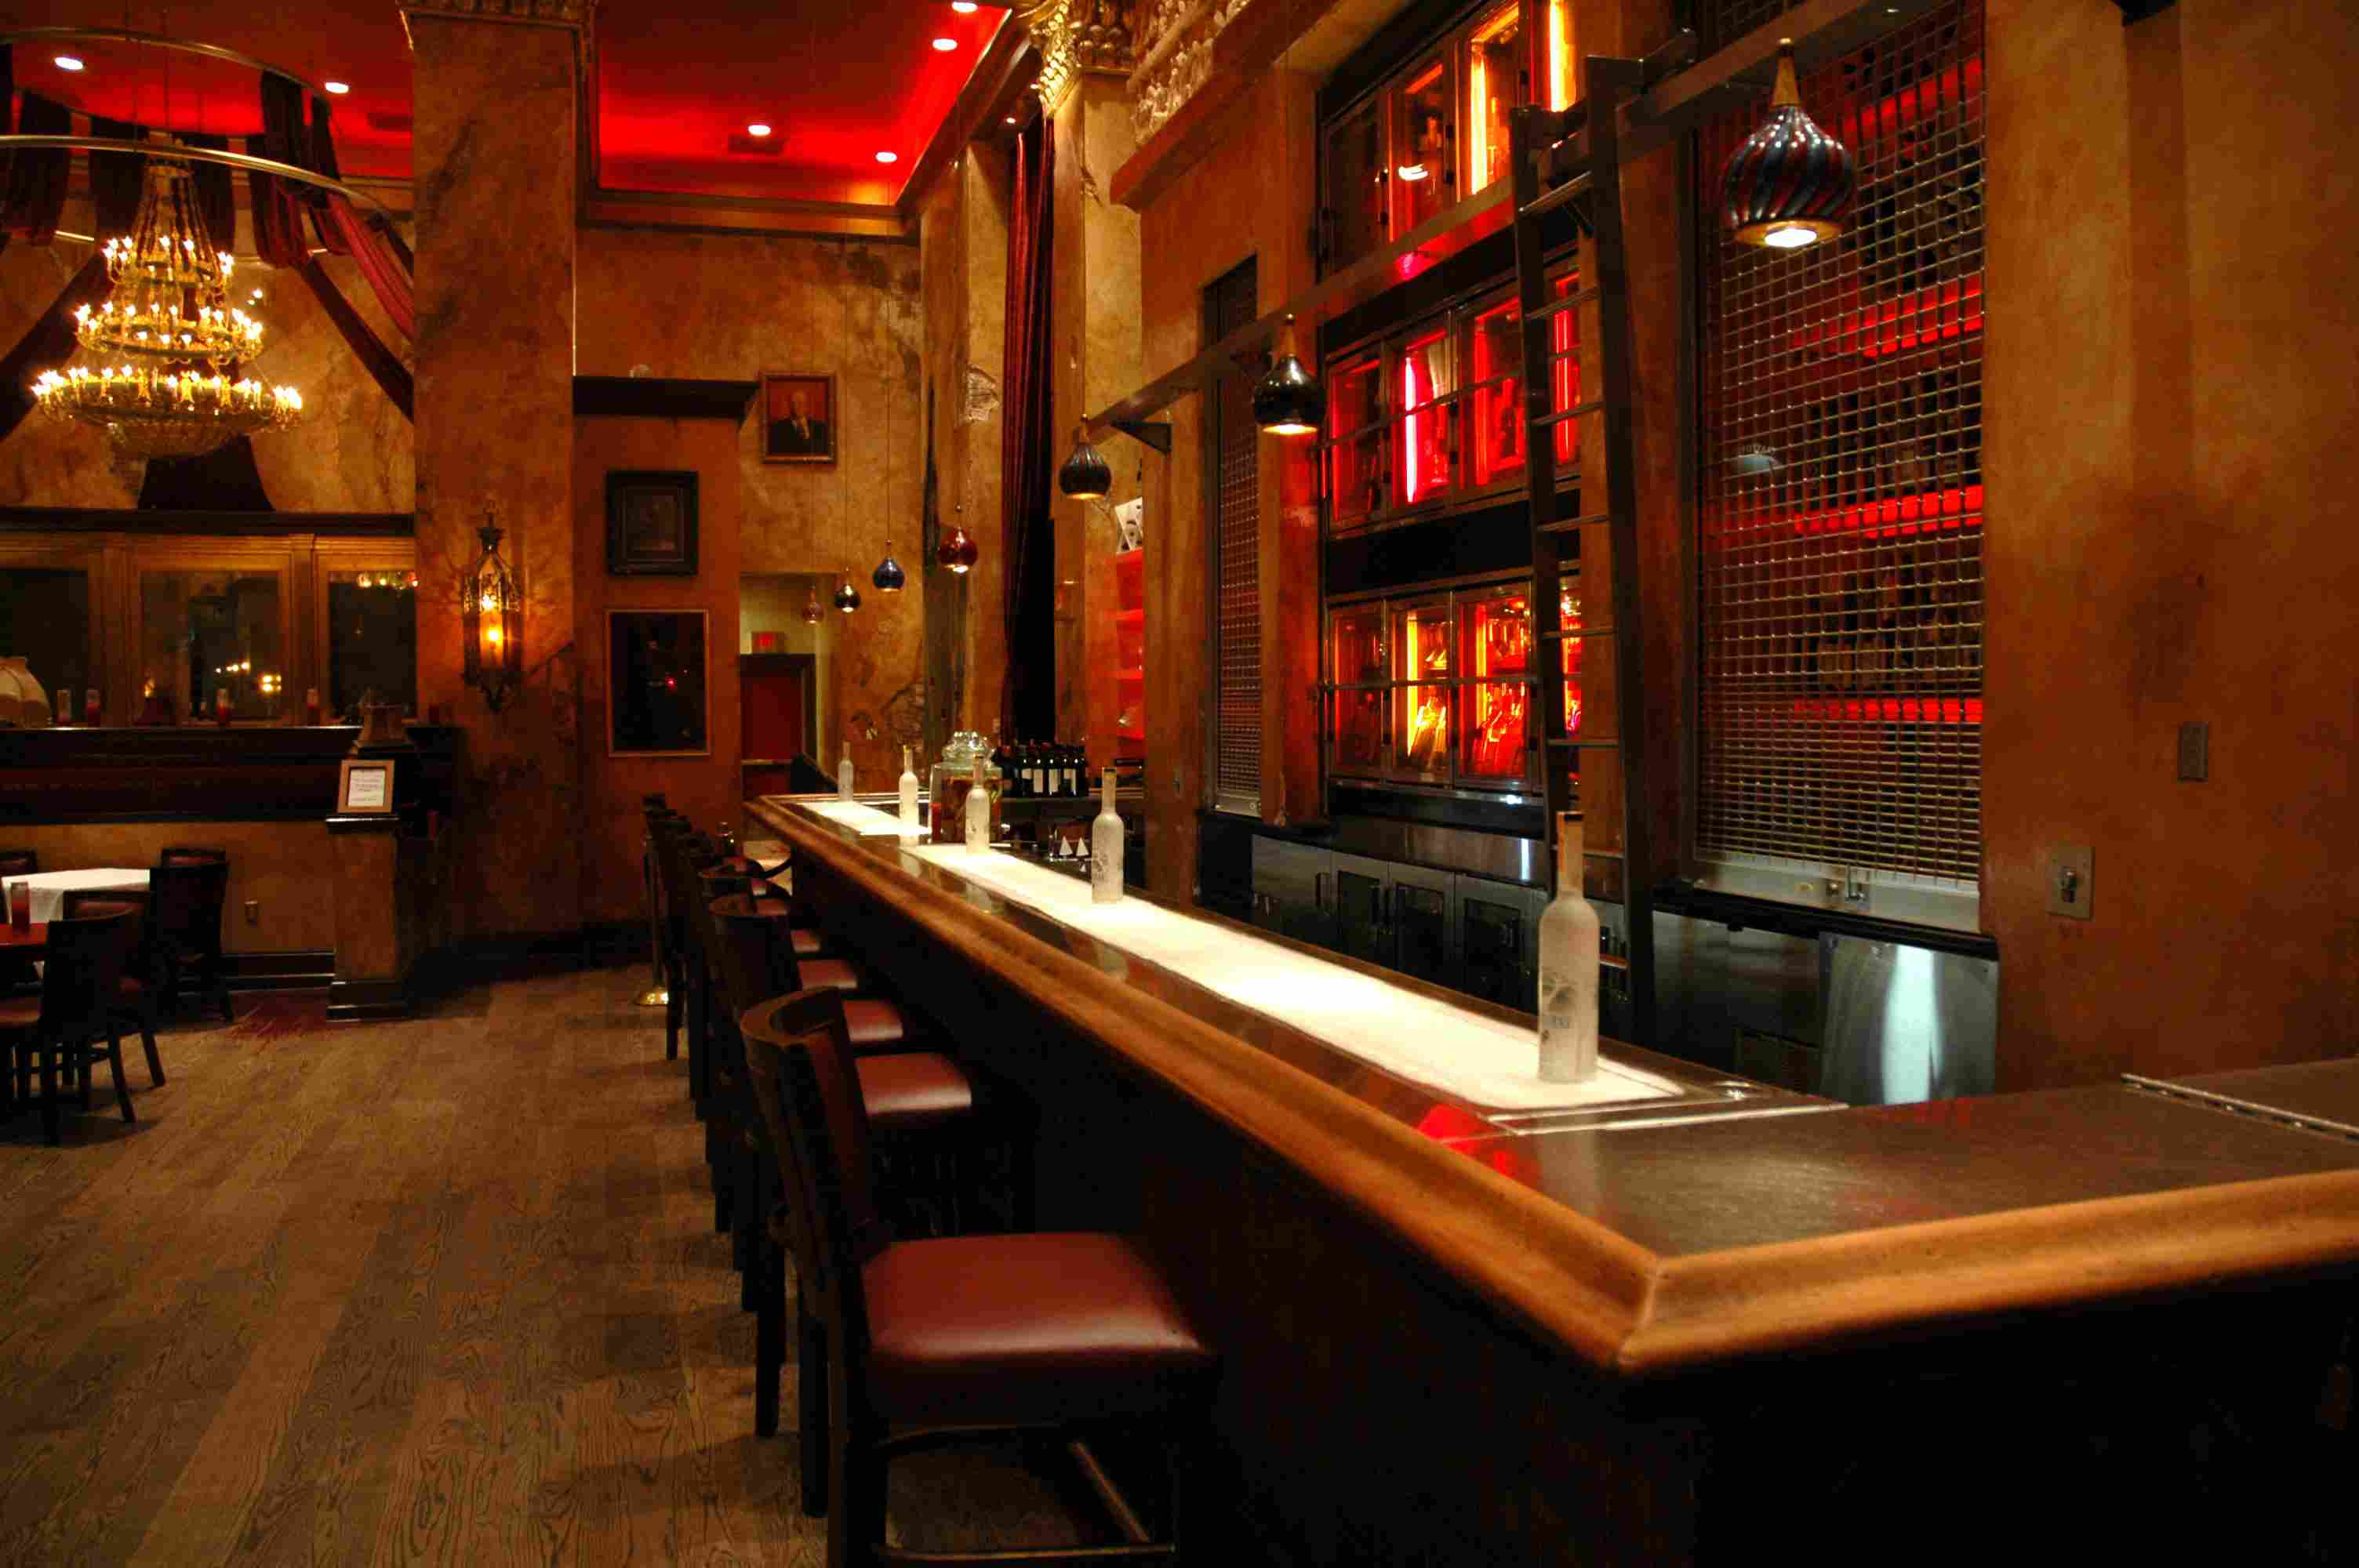 The Best Bachelor Party Hotels In Las Vegas